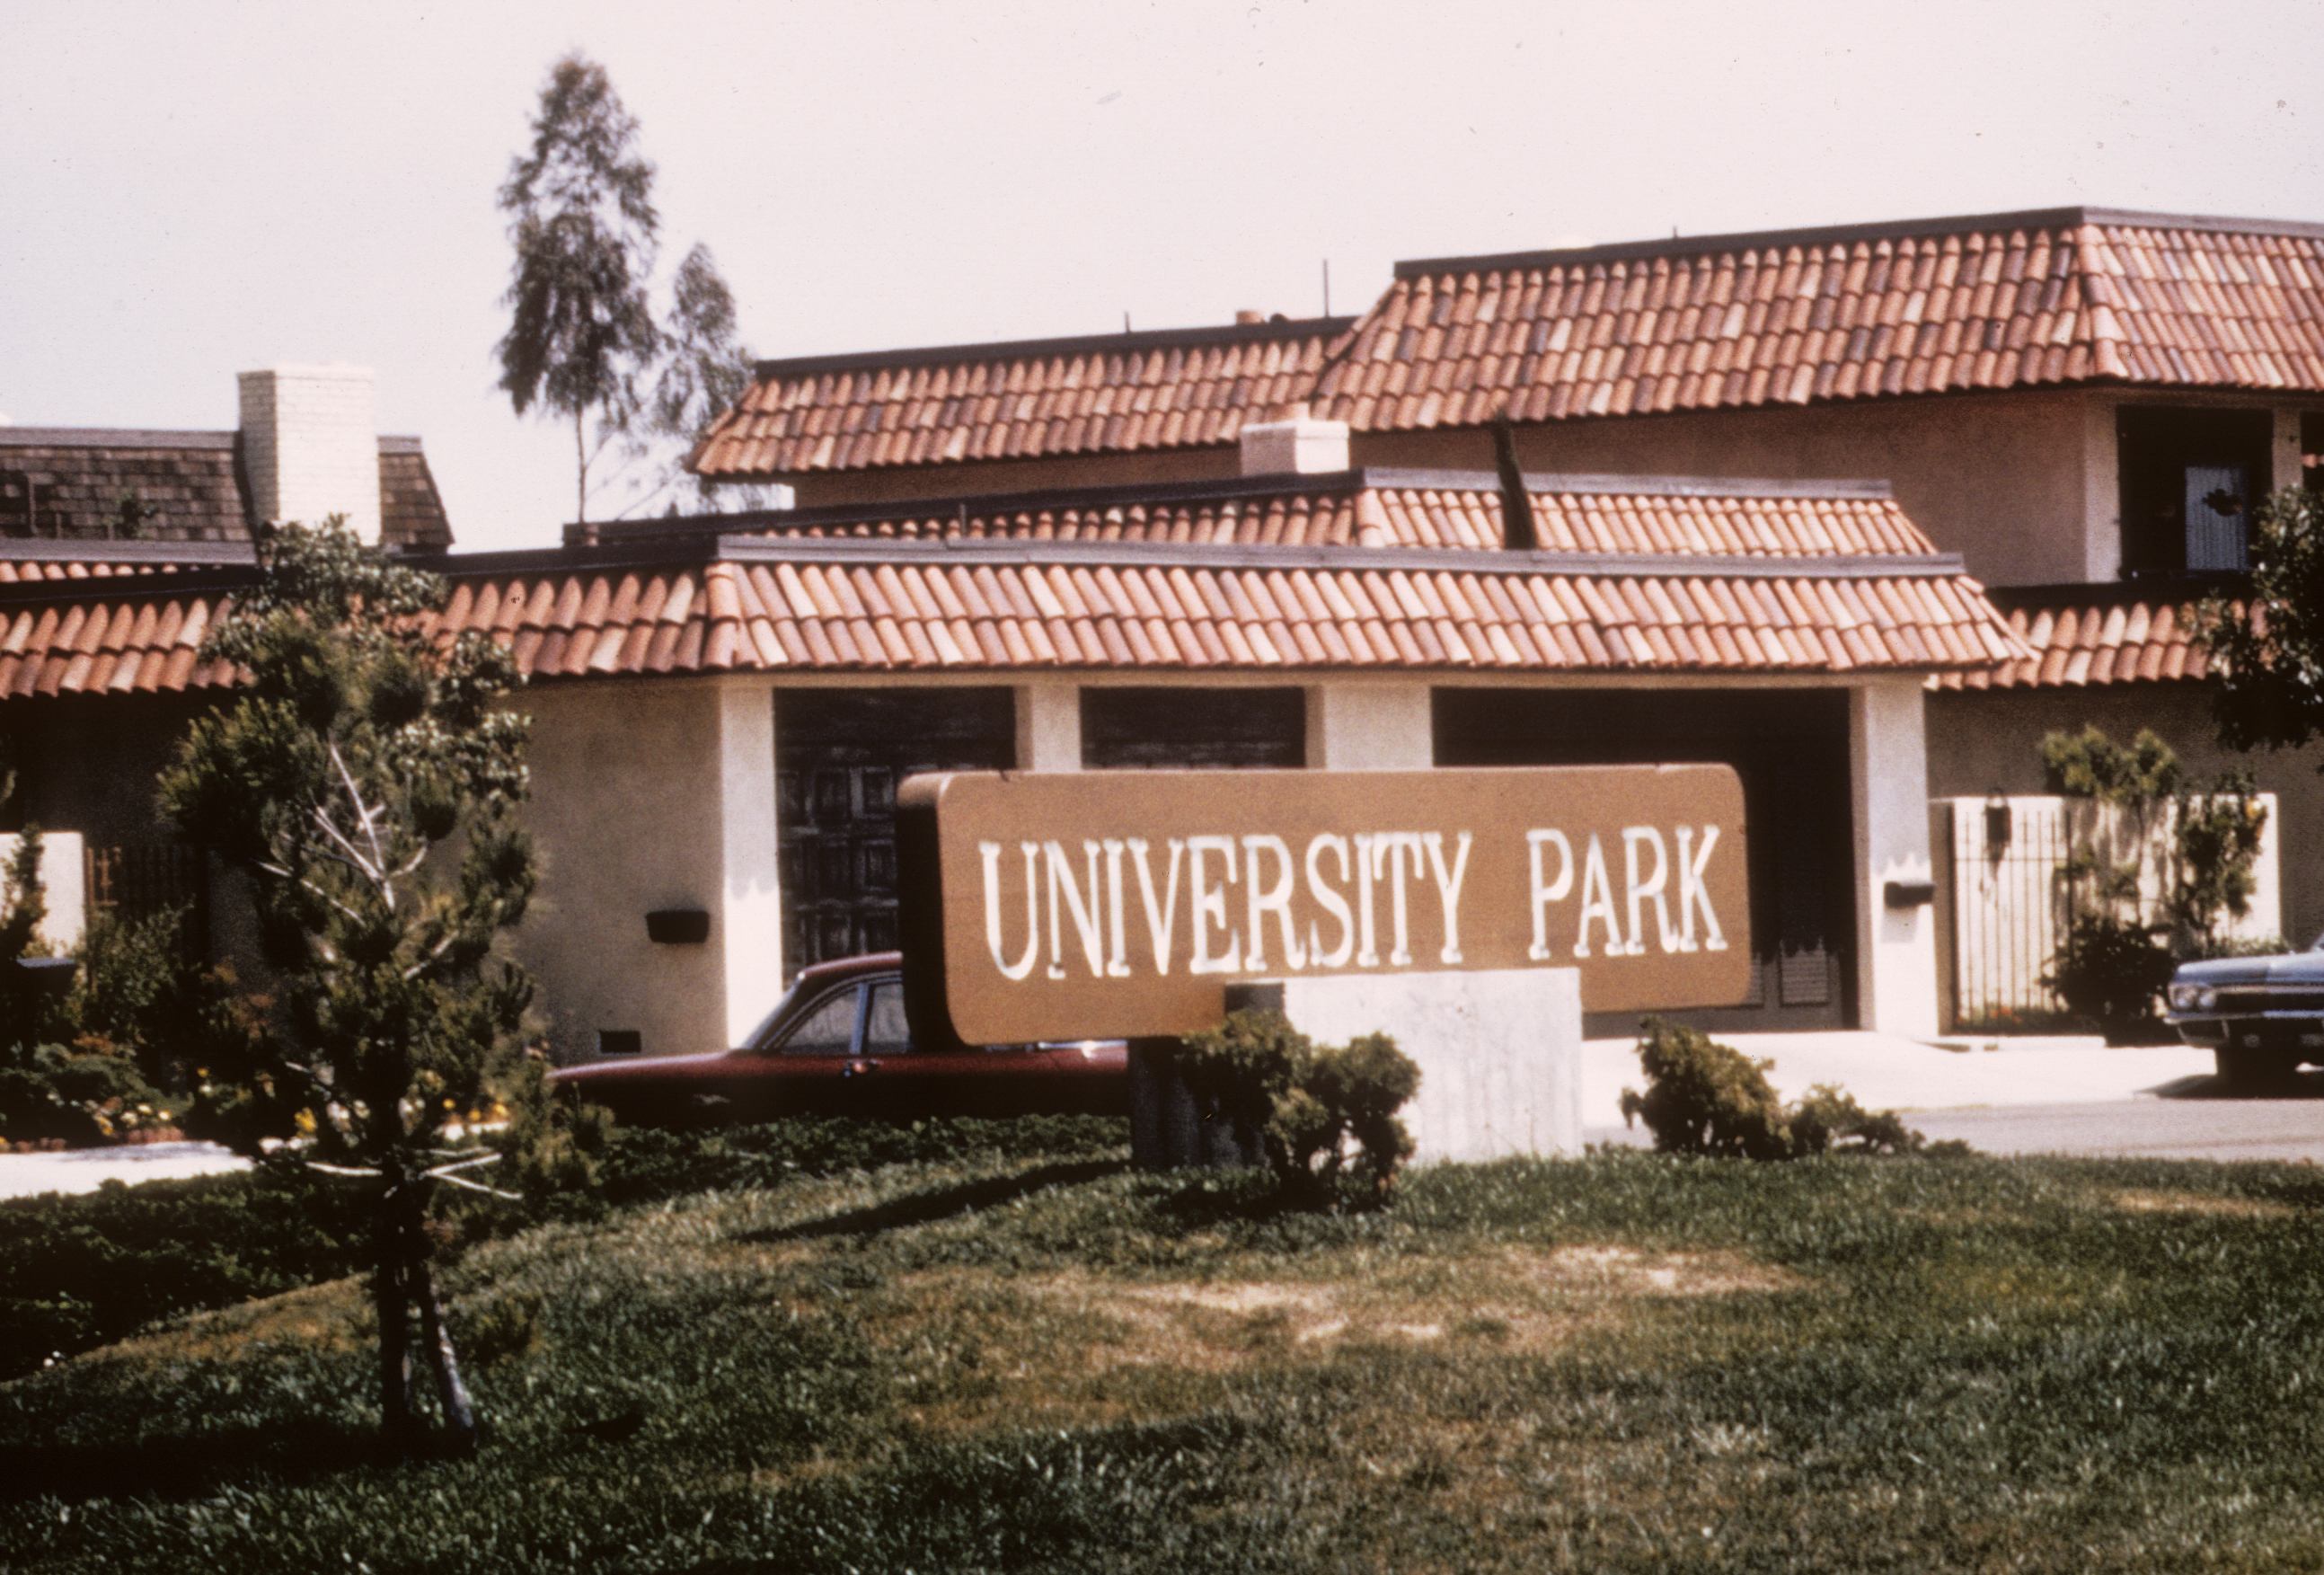 University Place Village in Irvine